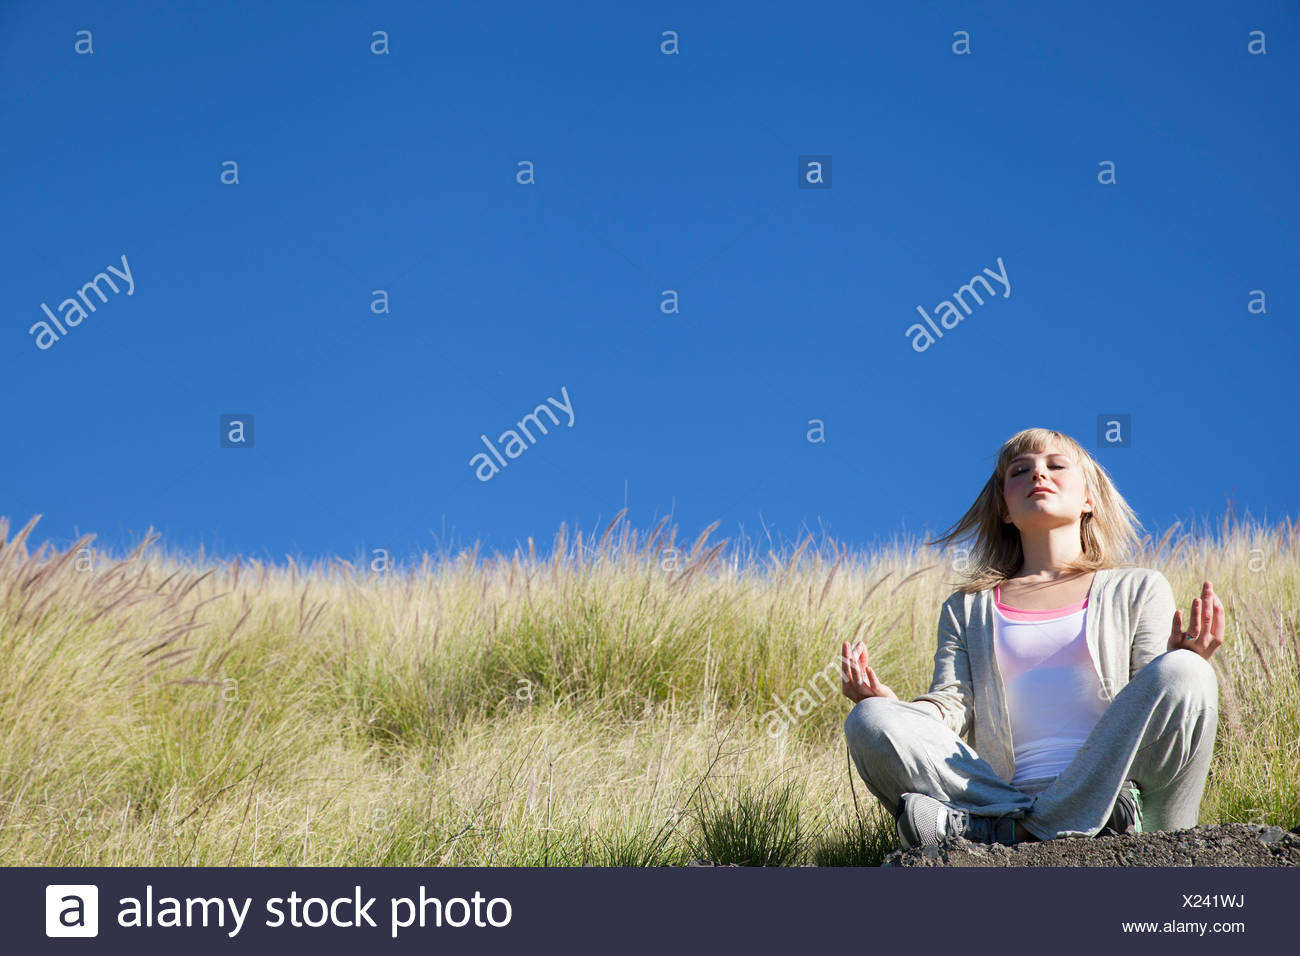 Young woman in yoga position on grassy hill - Stock Image